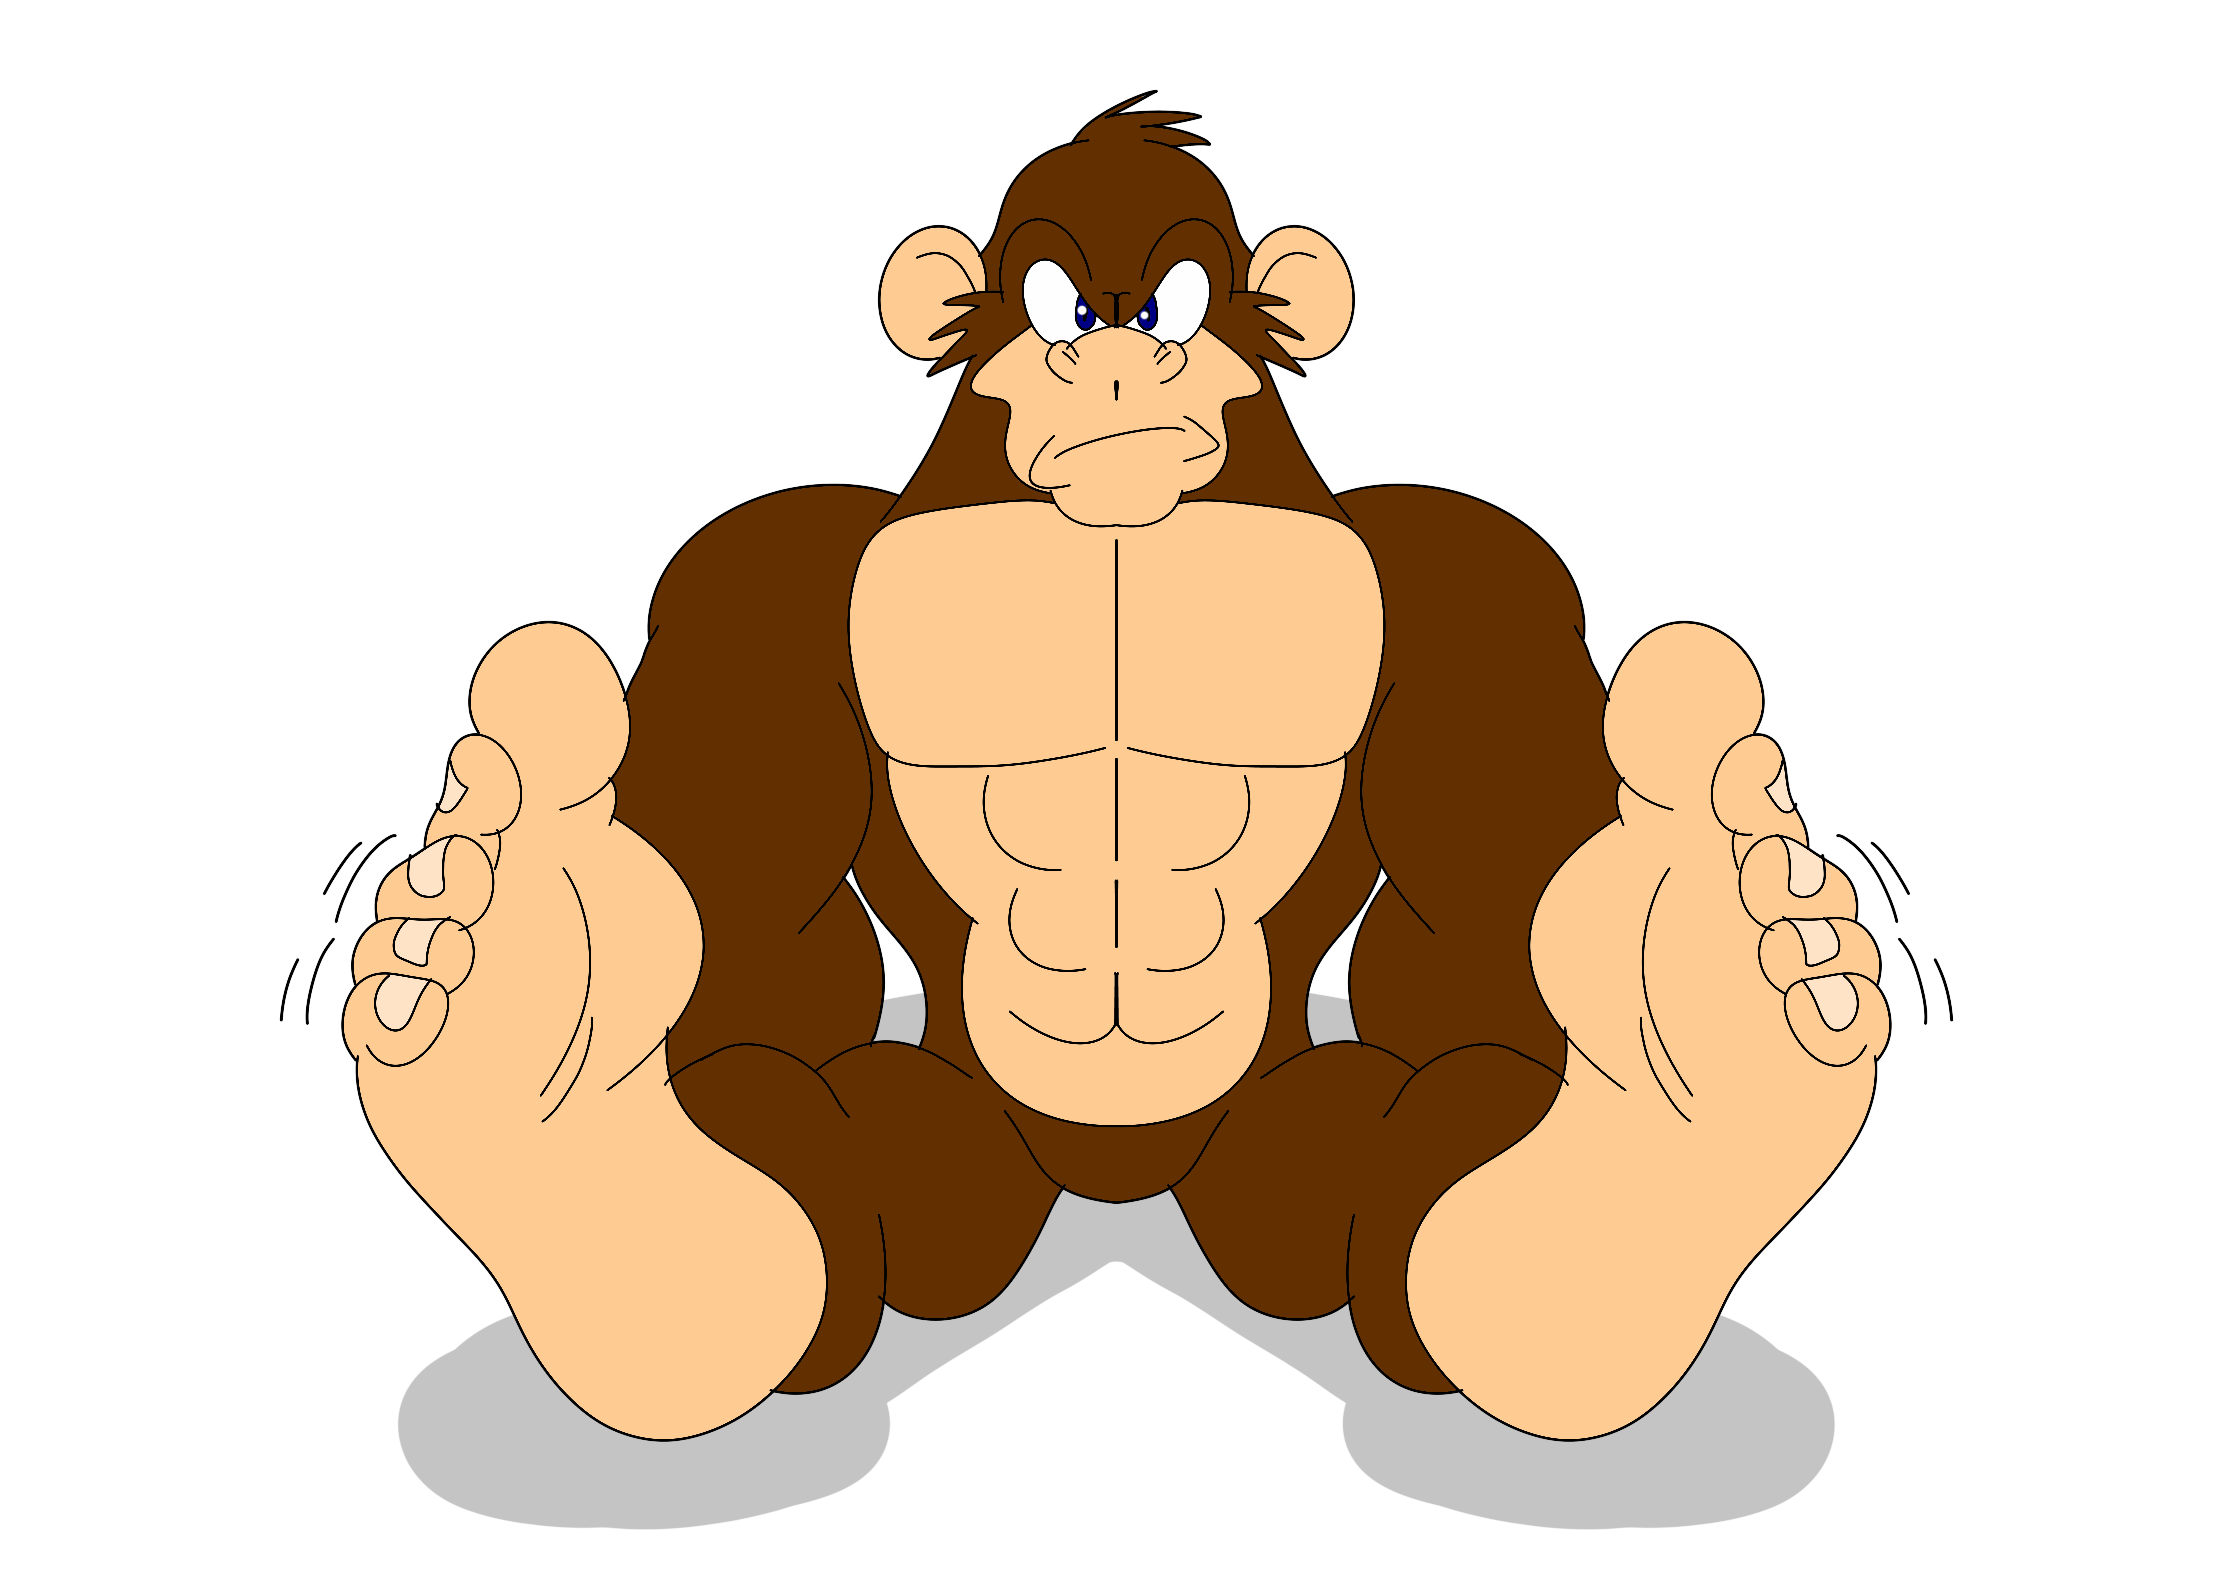 1601735899.welcometojollyville_sergent_simian_nude_and_feet